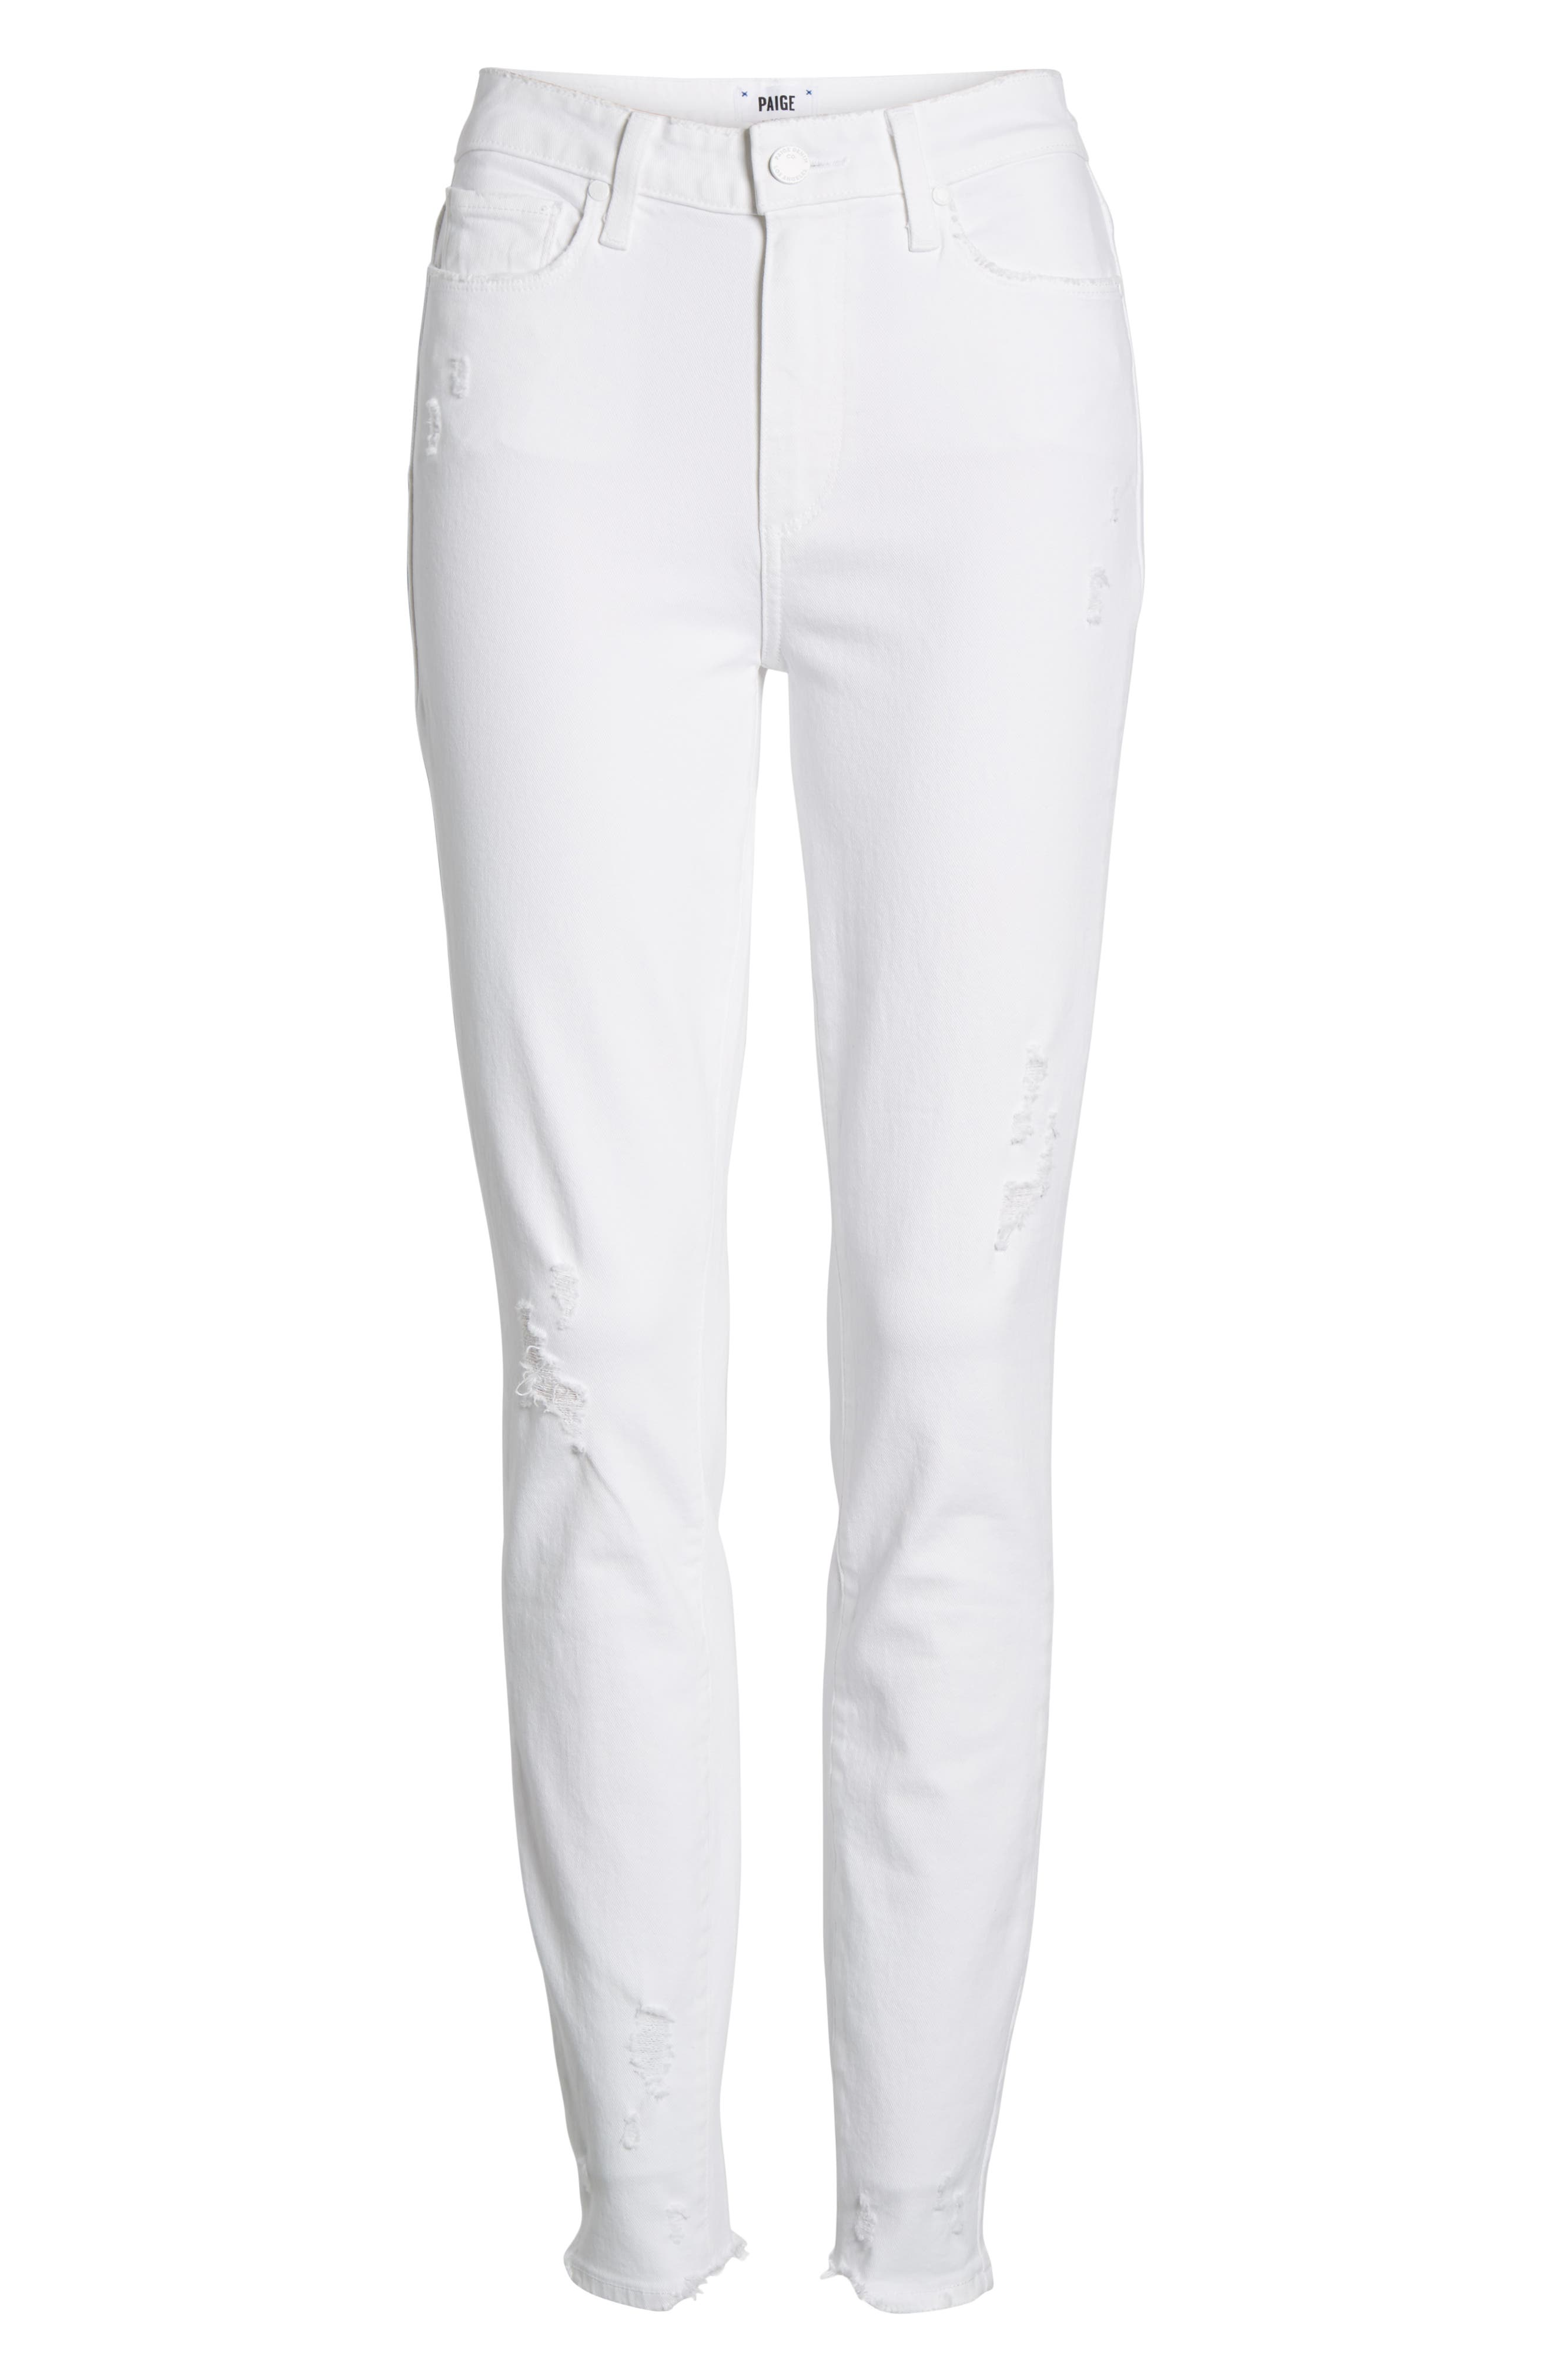 PAIGE, Hoxton High Waist Ankle Skinny Jeans, Alternate thumbnail 7, color, 100